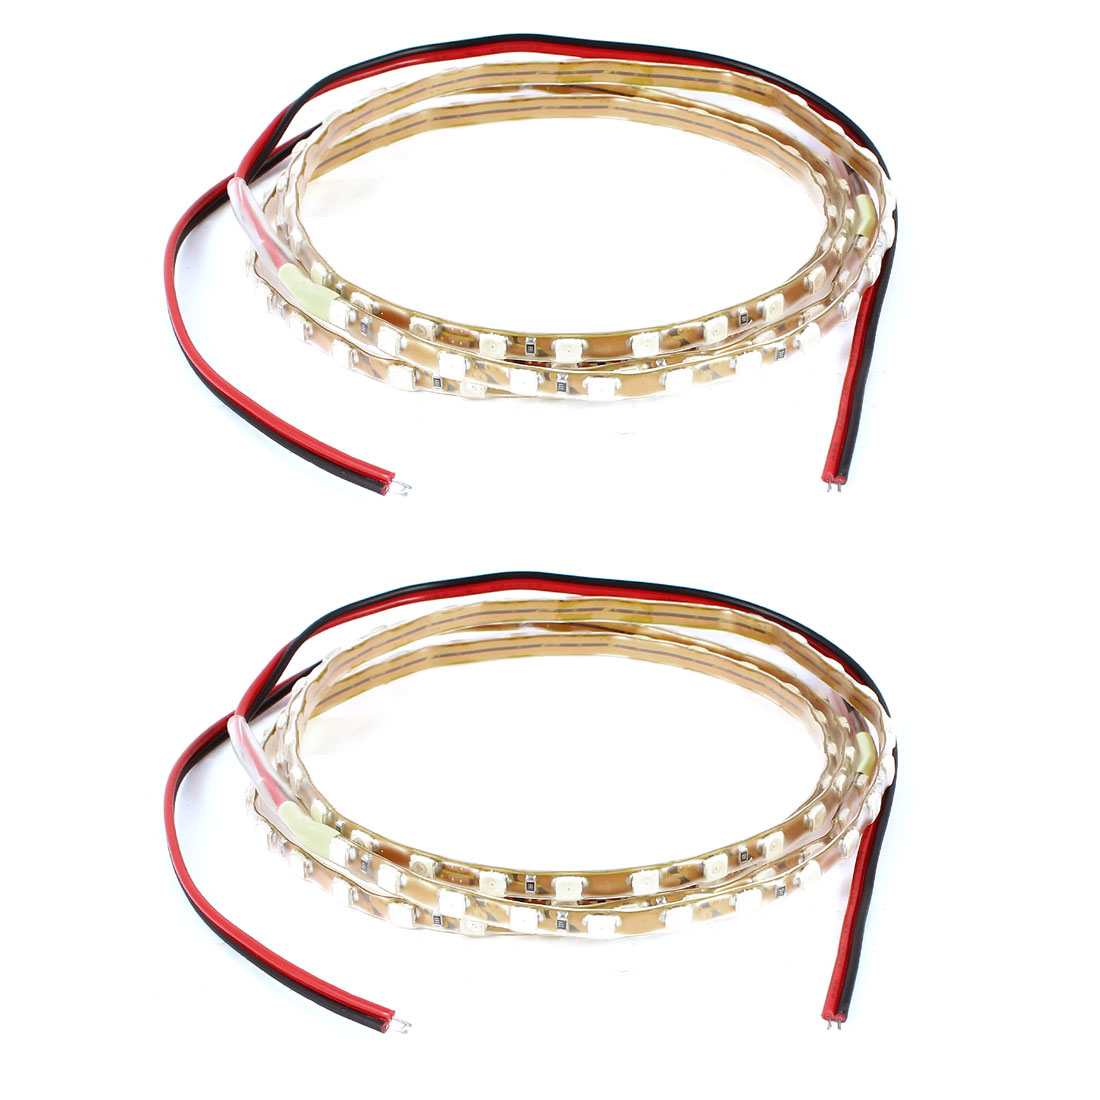 2 Pcs Auto Car Yellow 1210 3528 SMD 90 LED Flexible Strip Light Lamp 90cm Long Internal